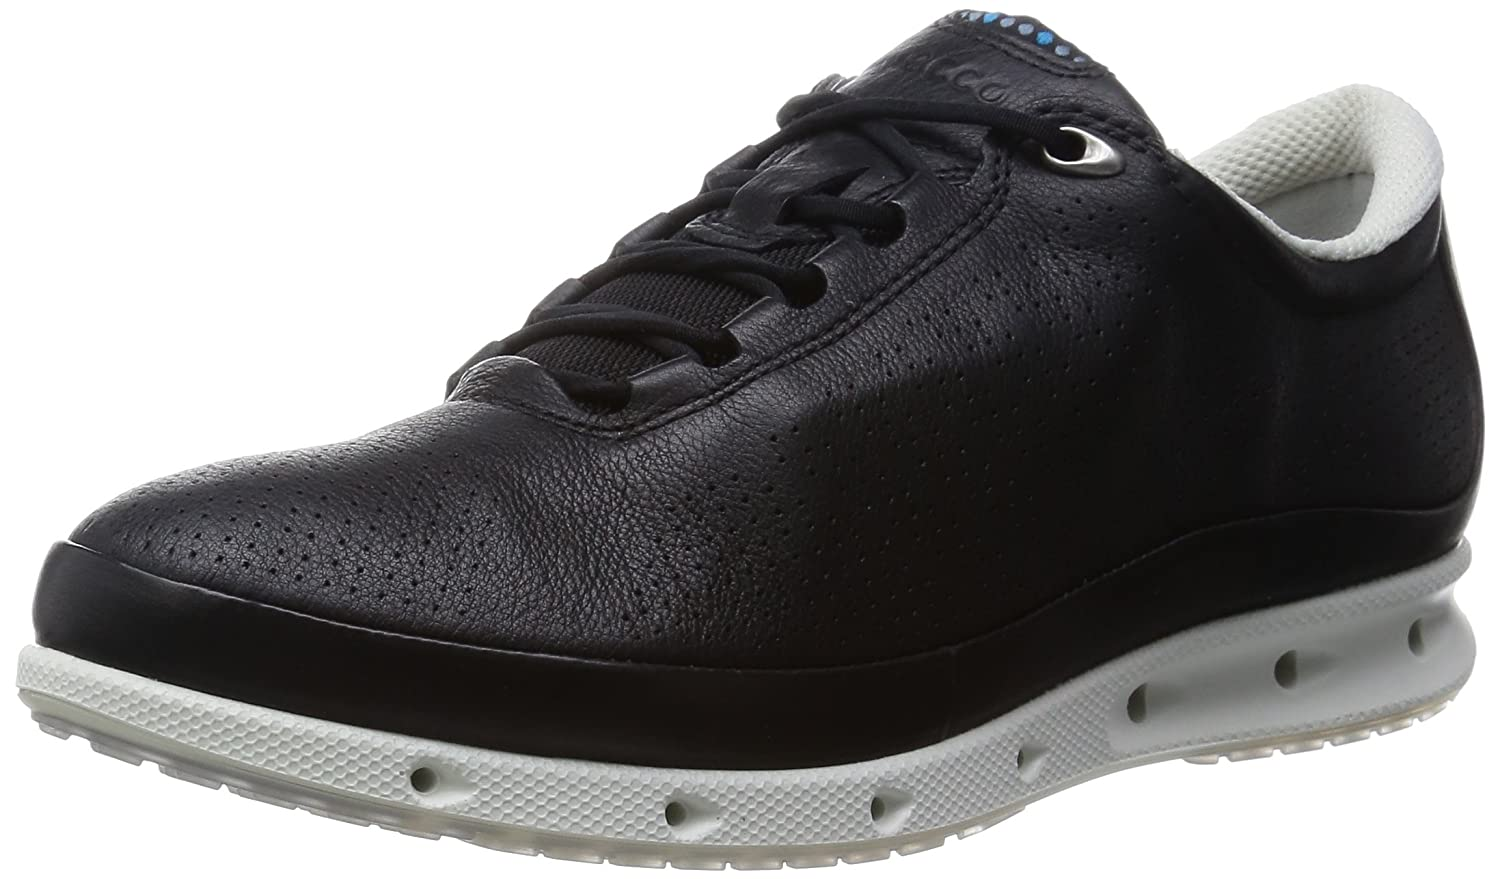 Ecco Cool, Chaussures Multisport Outdoor Femme, Noir (Black/White), 37 EU